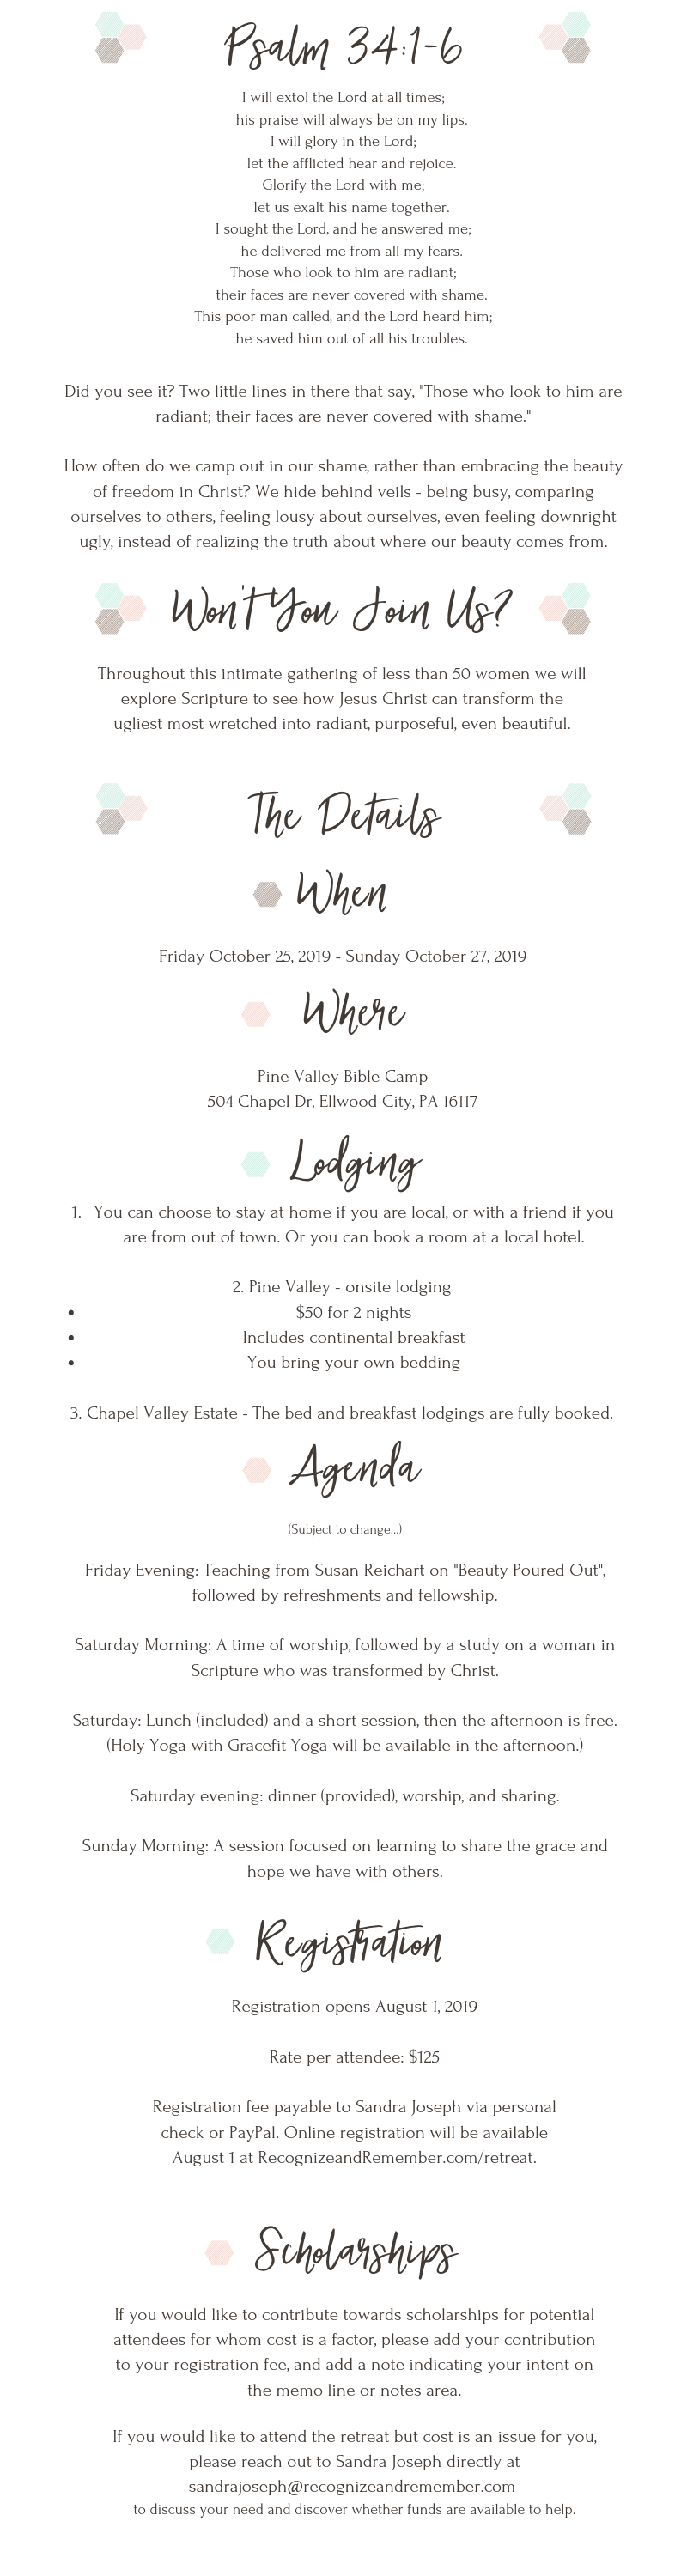 Beauty Revealed retreat information - agenda, lodging, etc.